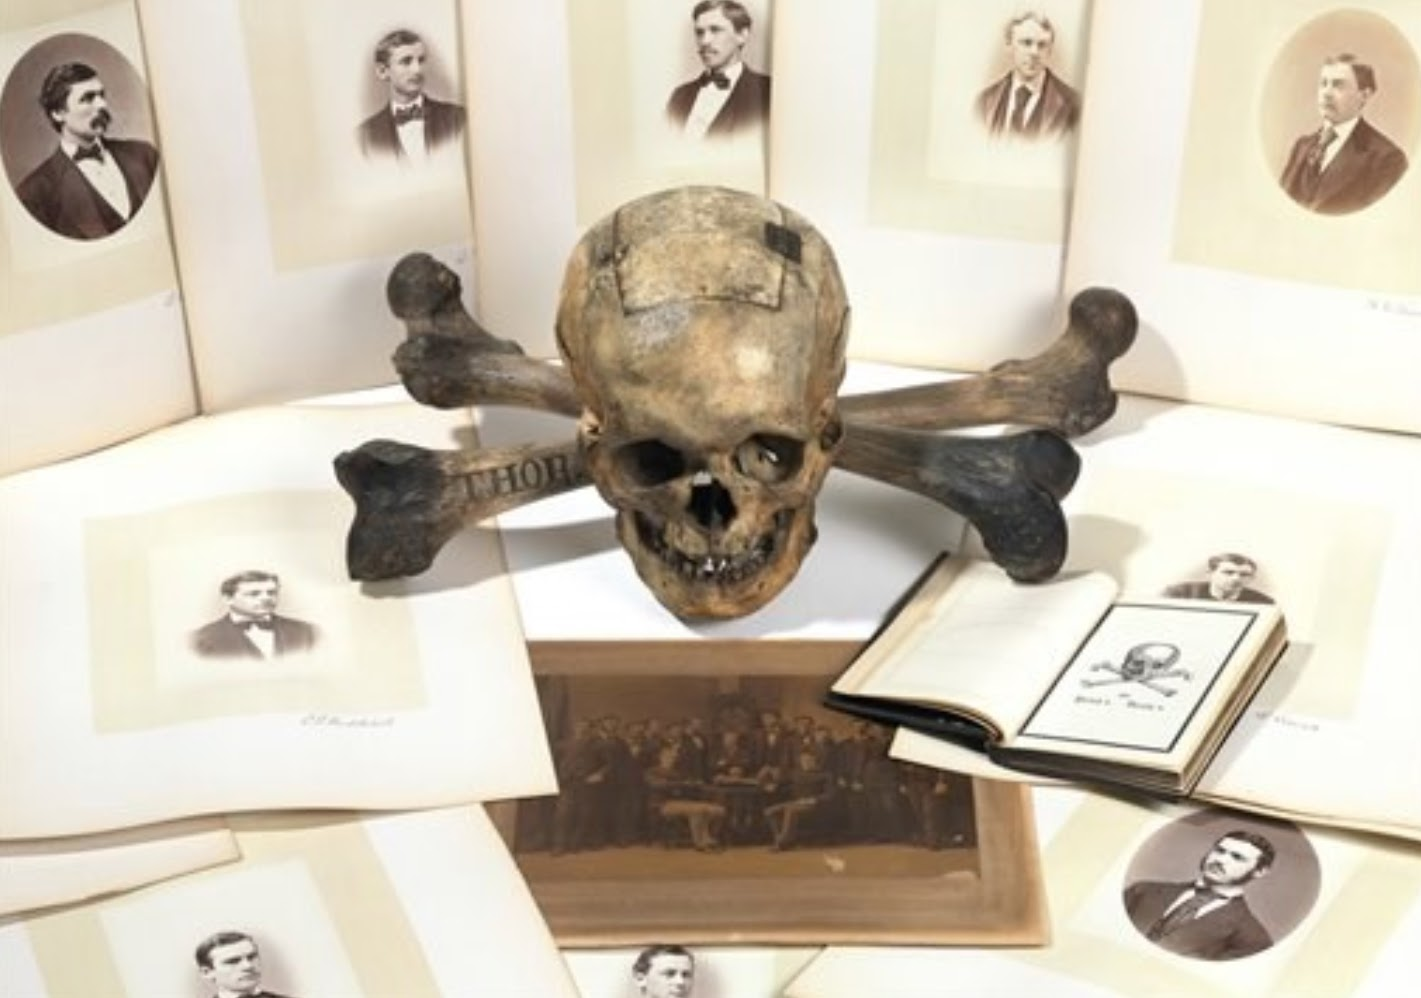 Christie's auctioned off an 1872 ballot box belonging to Yale's secretive Skull and Bones society